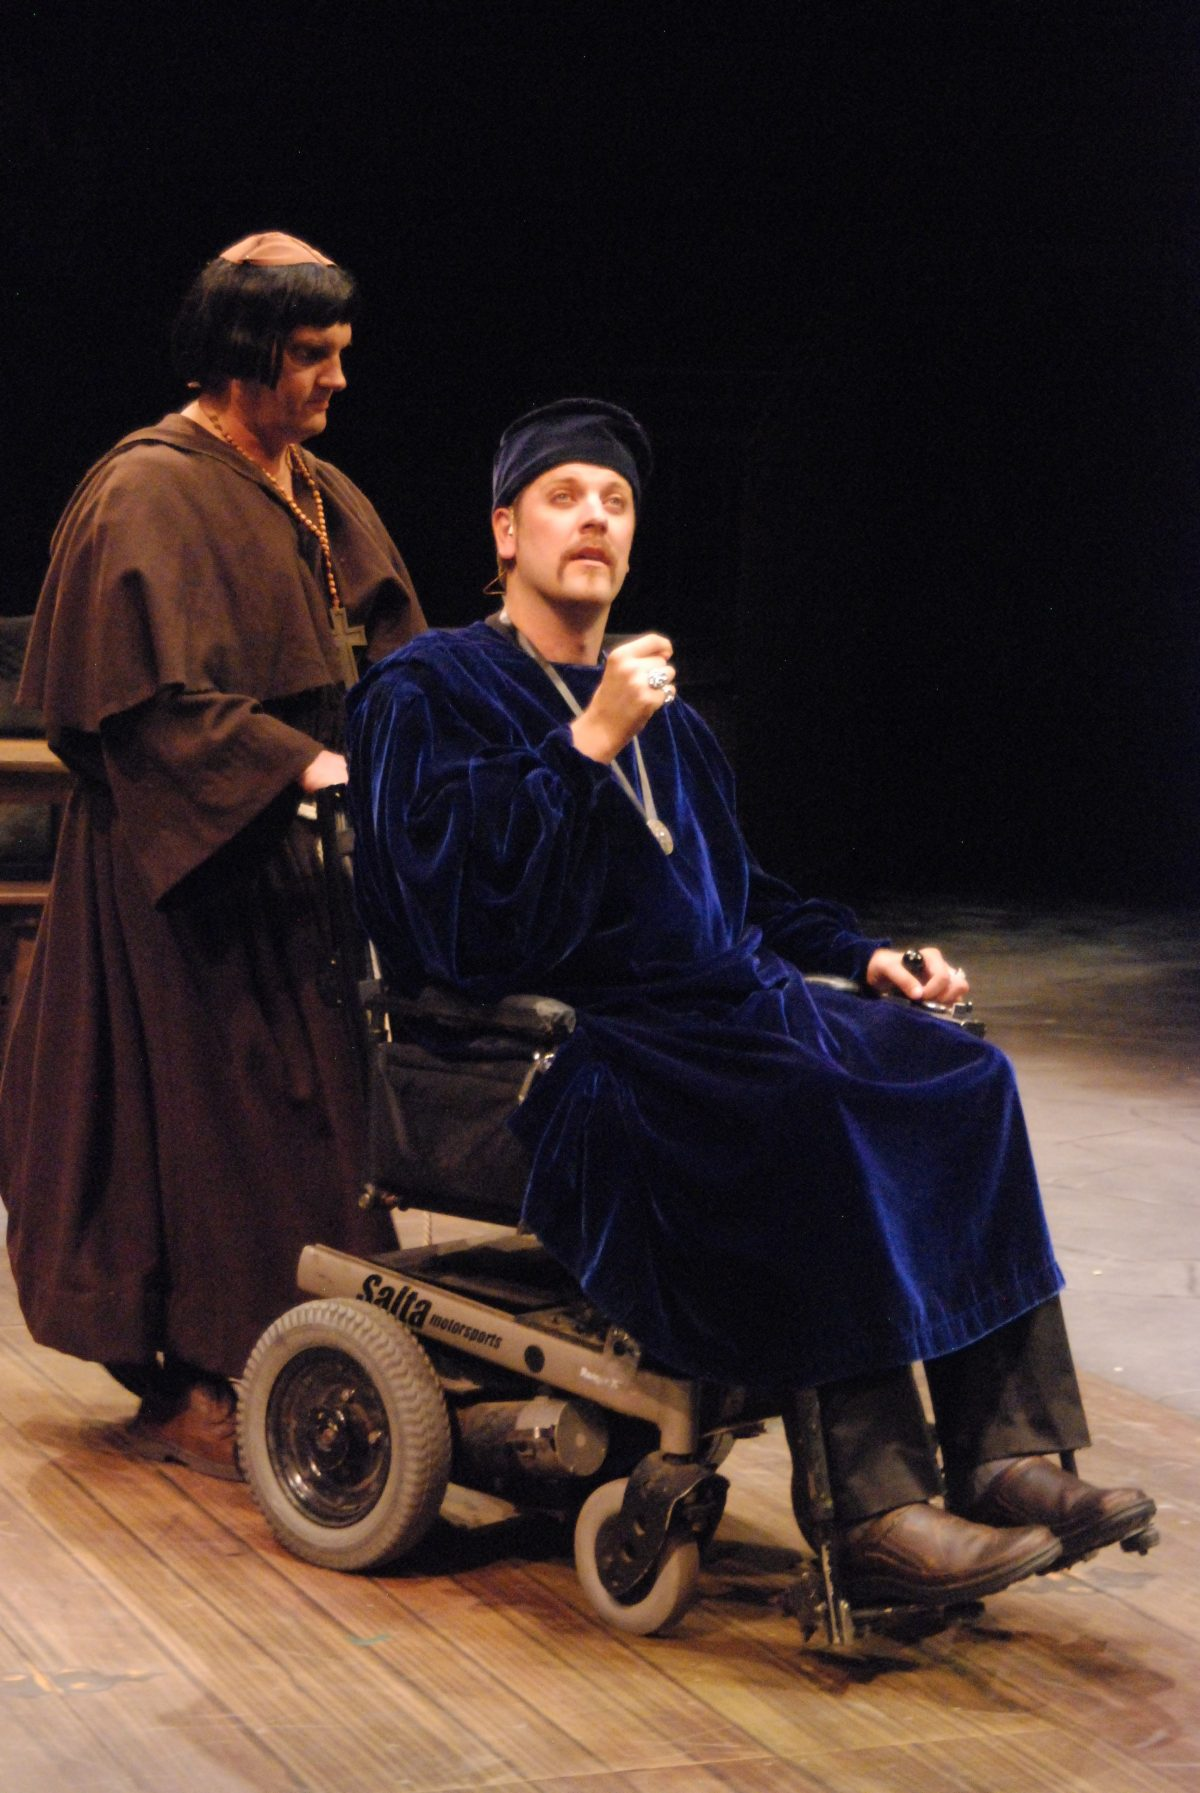 Man in blue robes sitting in a wheelchair being pushed by man in monk's robe.